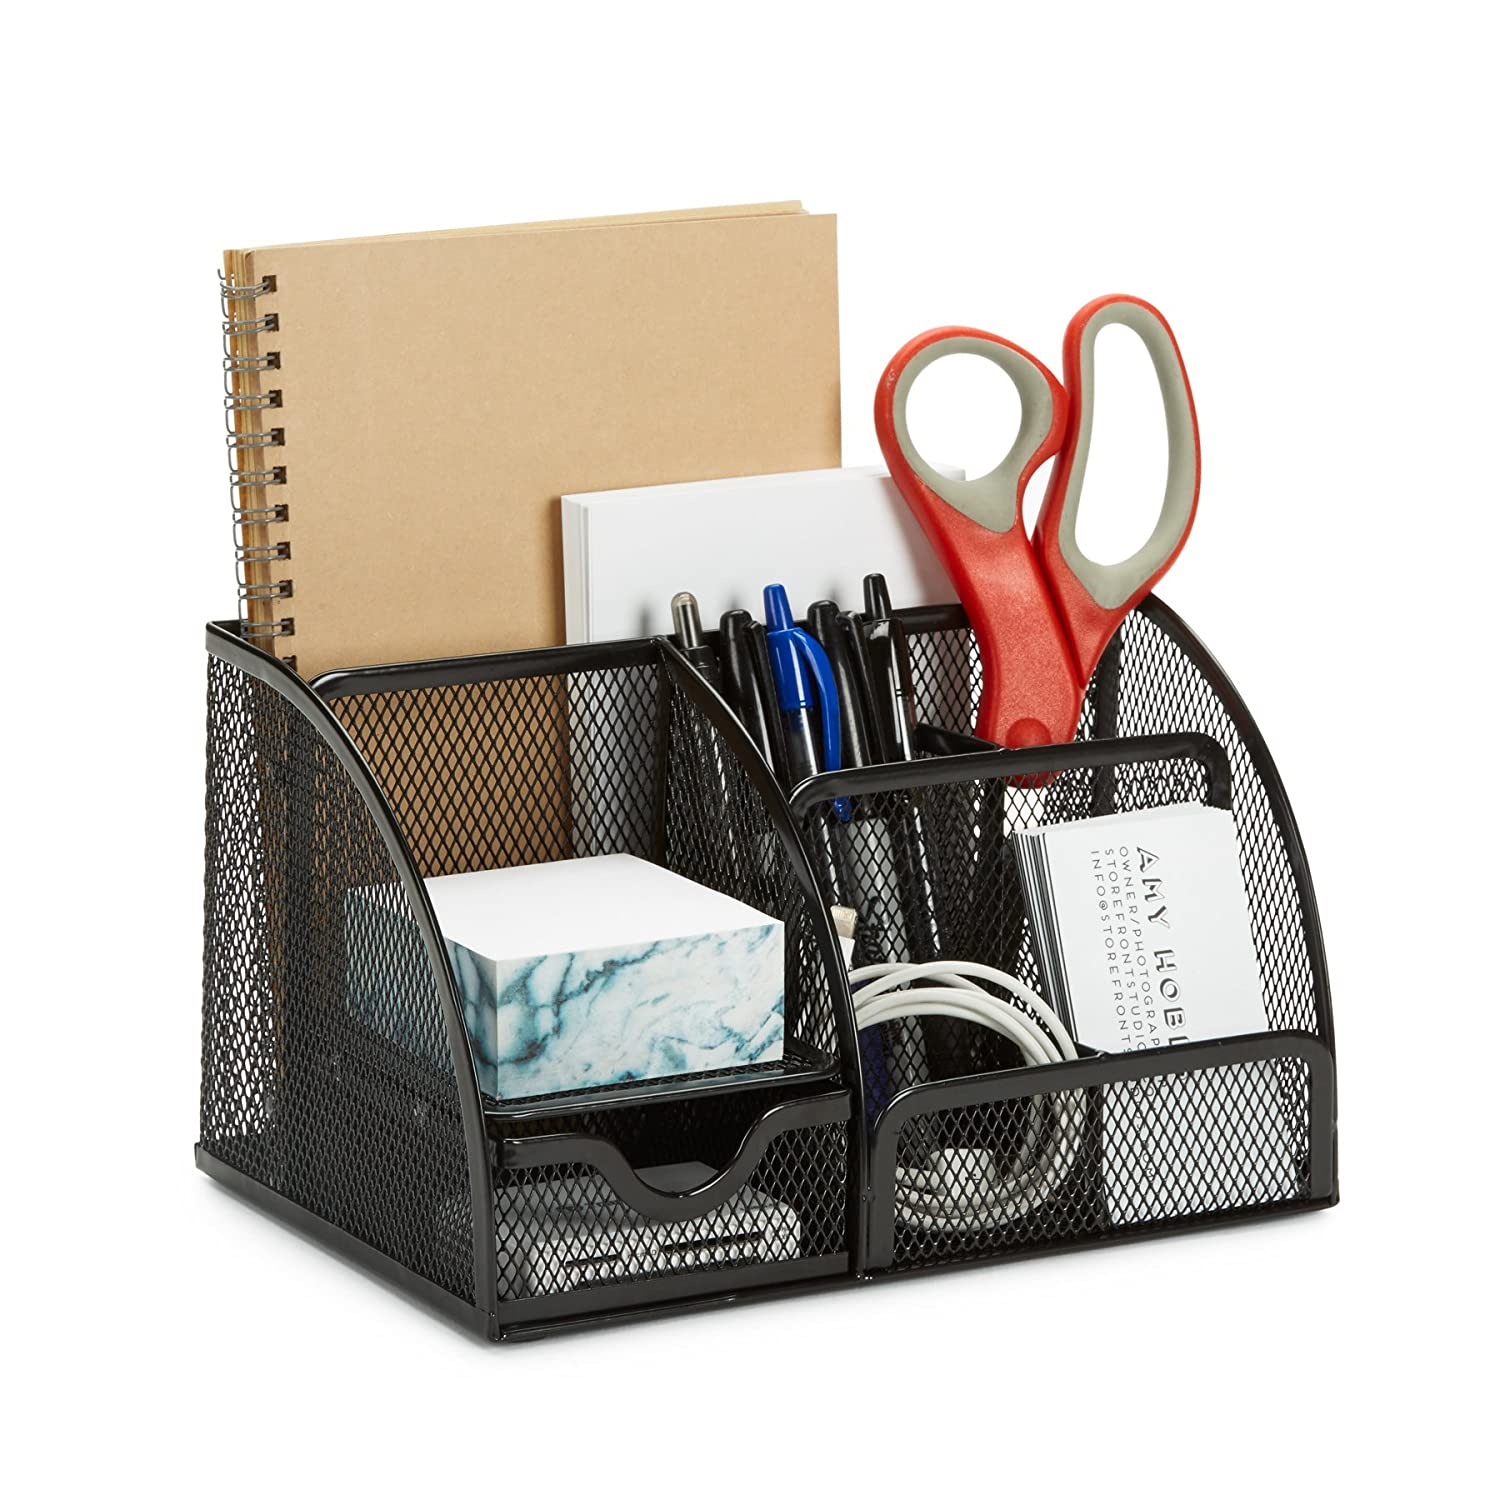 7 Compartment Wire Mesh Desk Organizer, Black, Compact Caddy for Desk Accessories, Perfect for Home, Students, Or Office Blue Summit Supplies